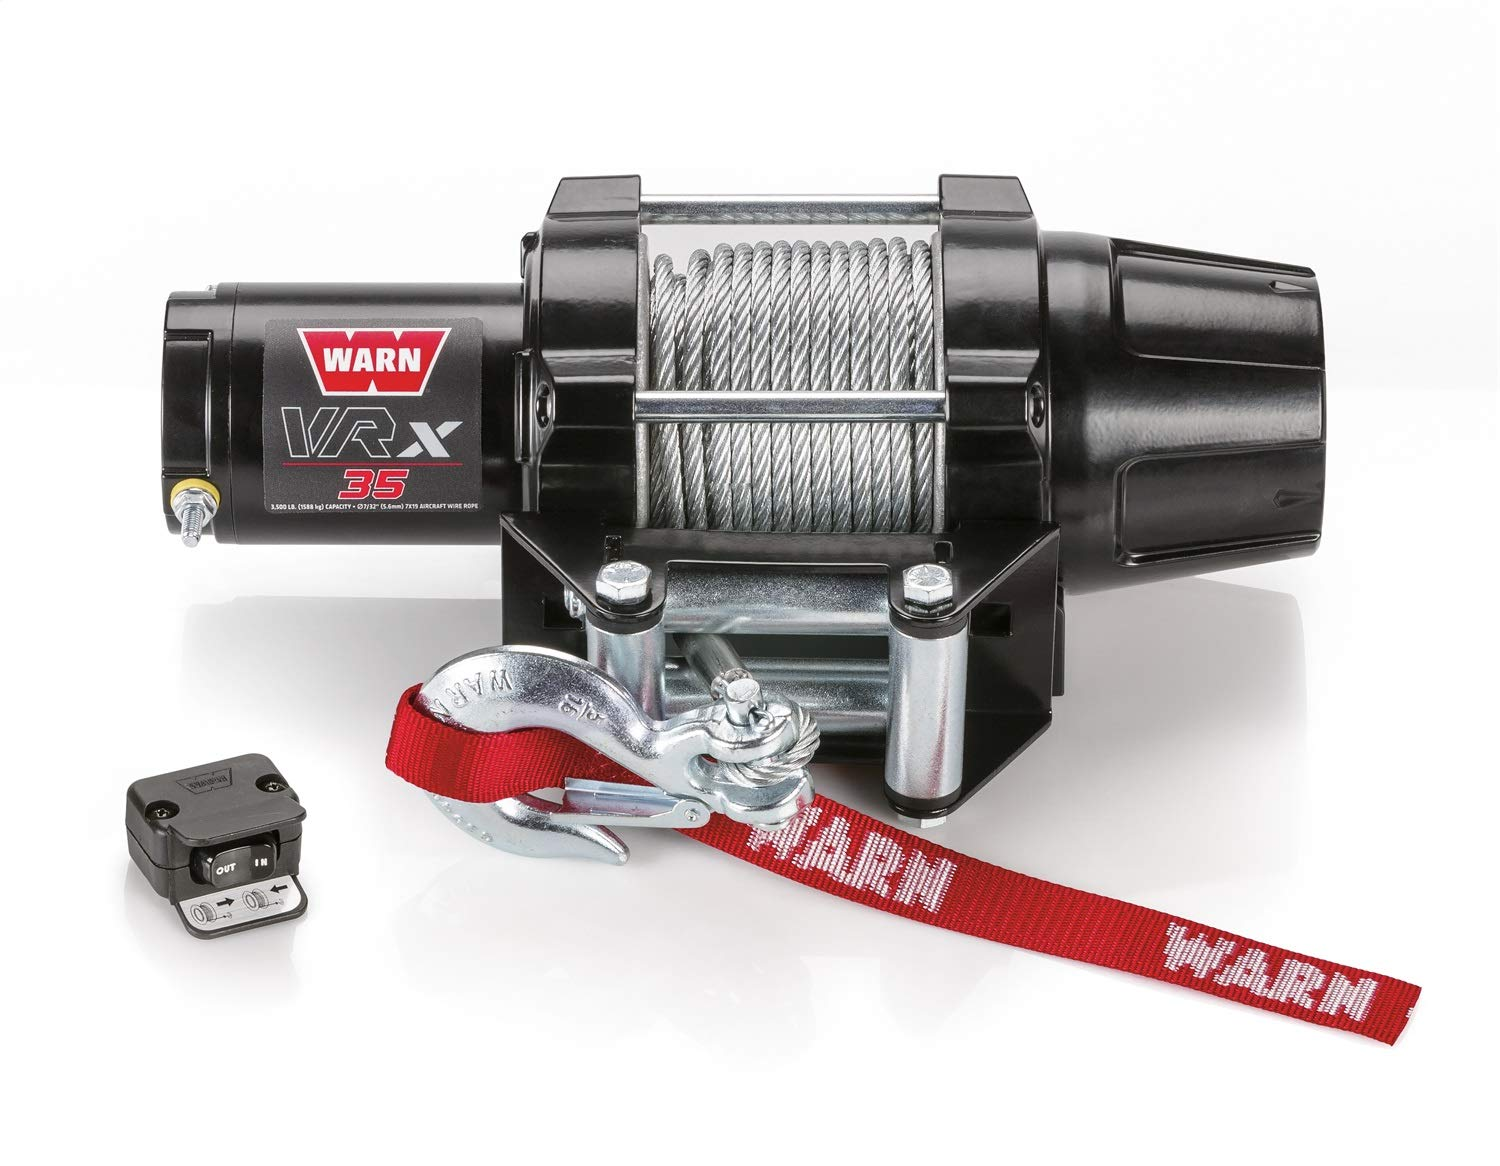 Amazon.com: WARN 101020 VRX 25-S Powersports Winch With Synthetic Rope: Automotive